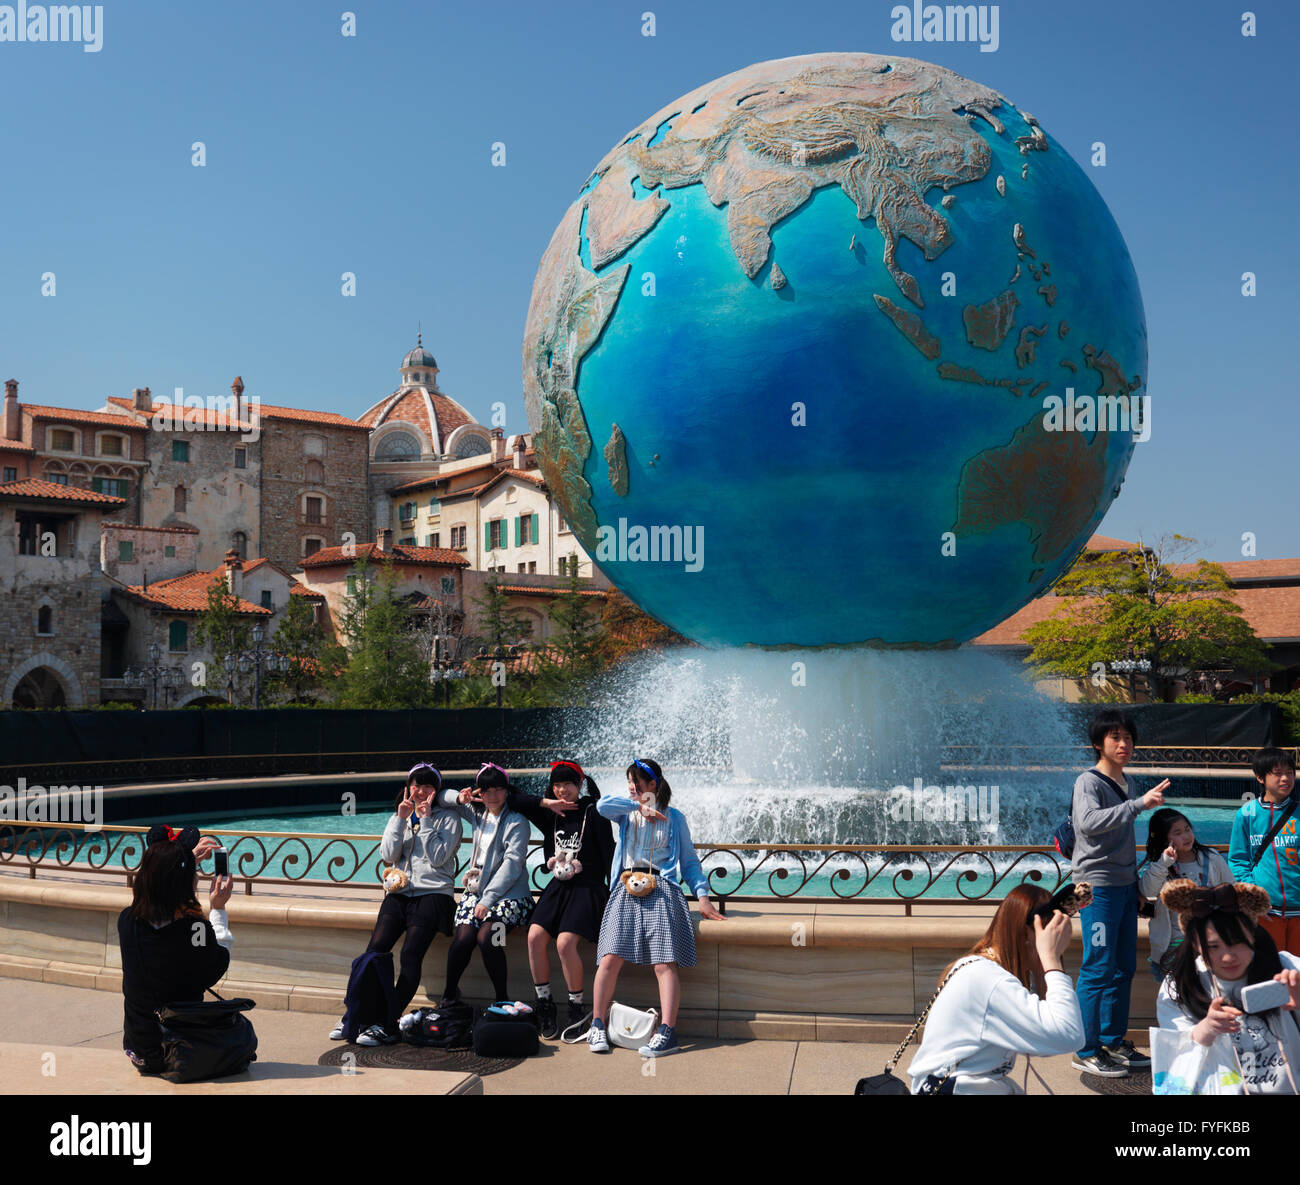 Girls posing for a photo at Earth globe fountain, Tokyo DisneySea, Tokyo Disney Resort, Japan - Stock Image